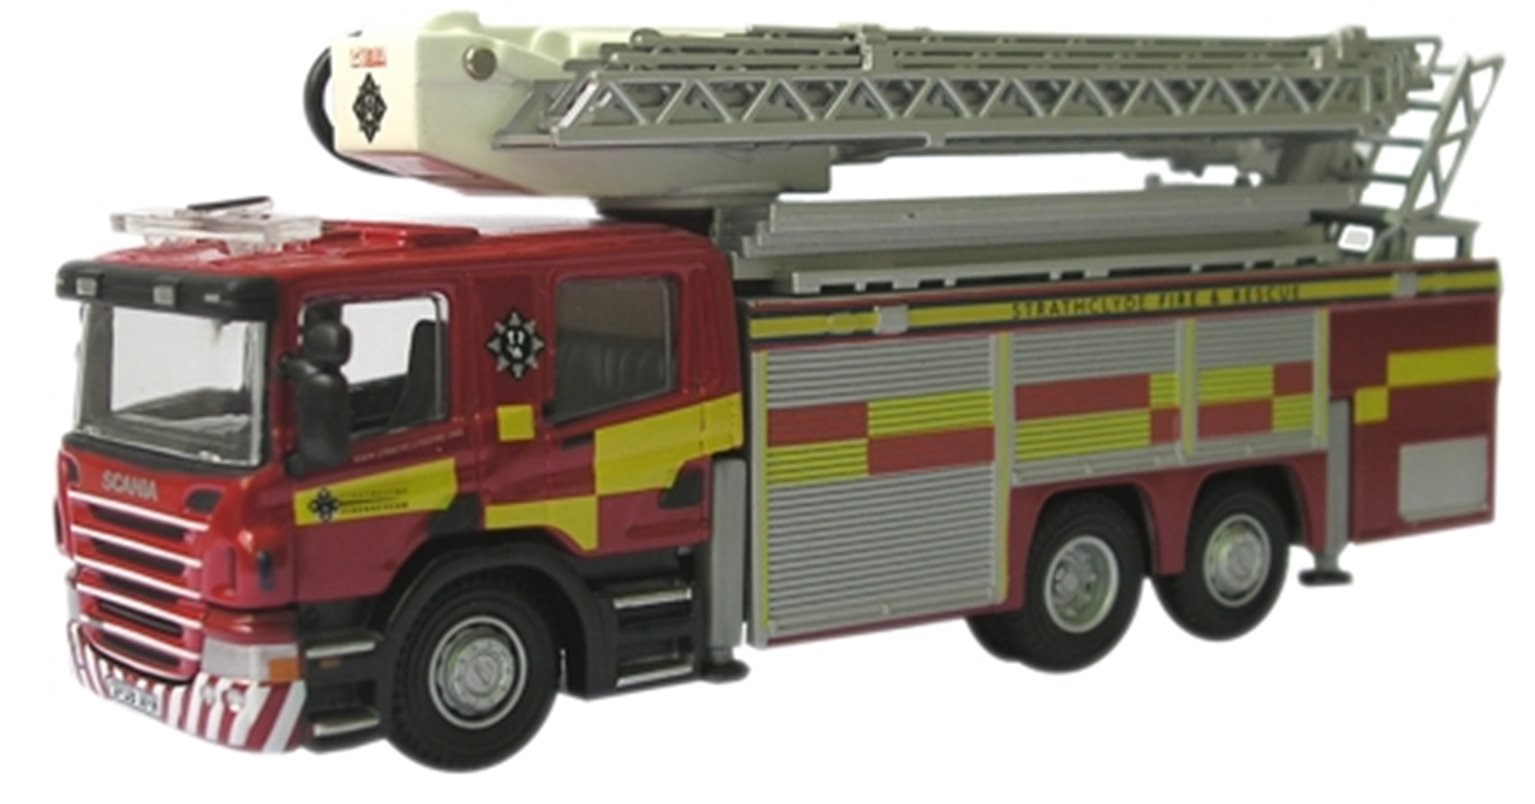 Strathclyde Fire and Rescue Aerial Rescue Pump